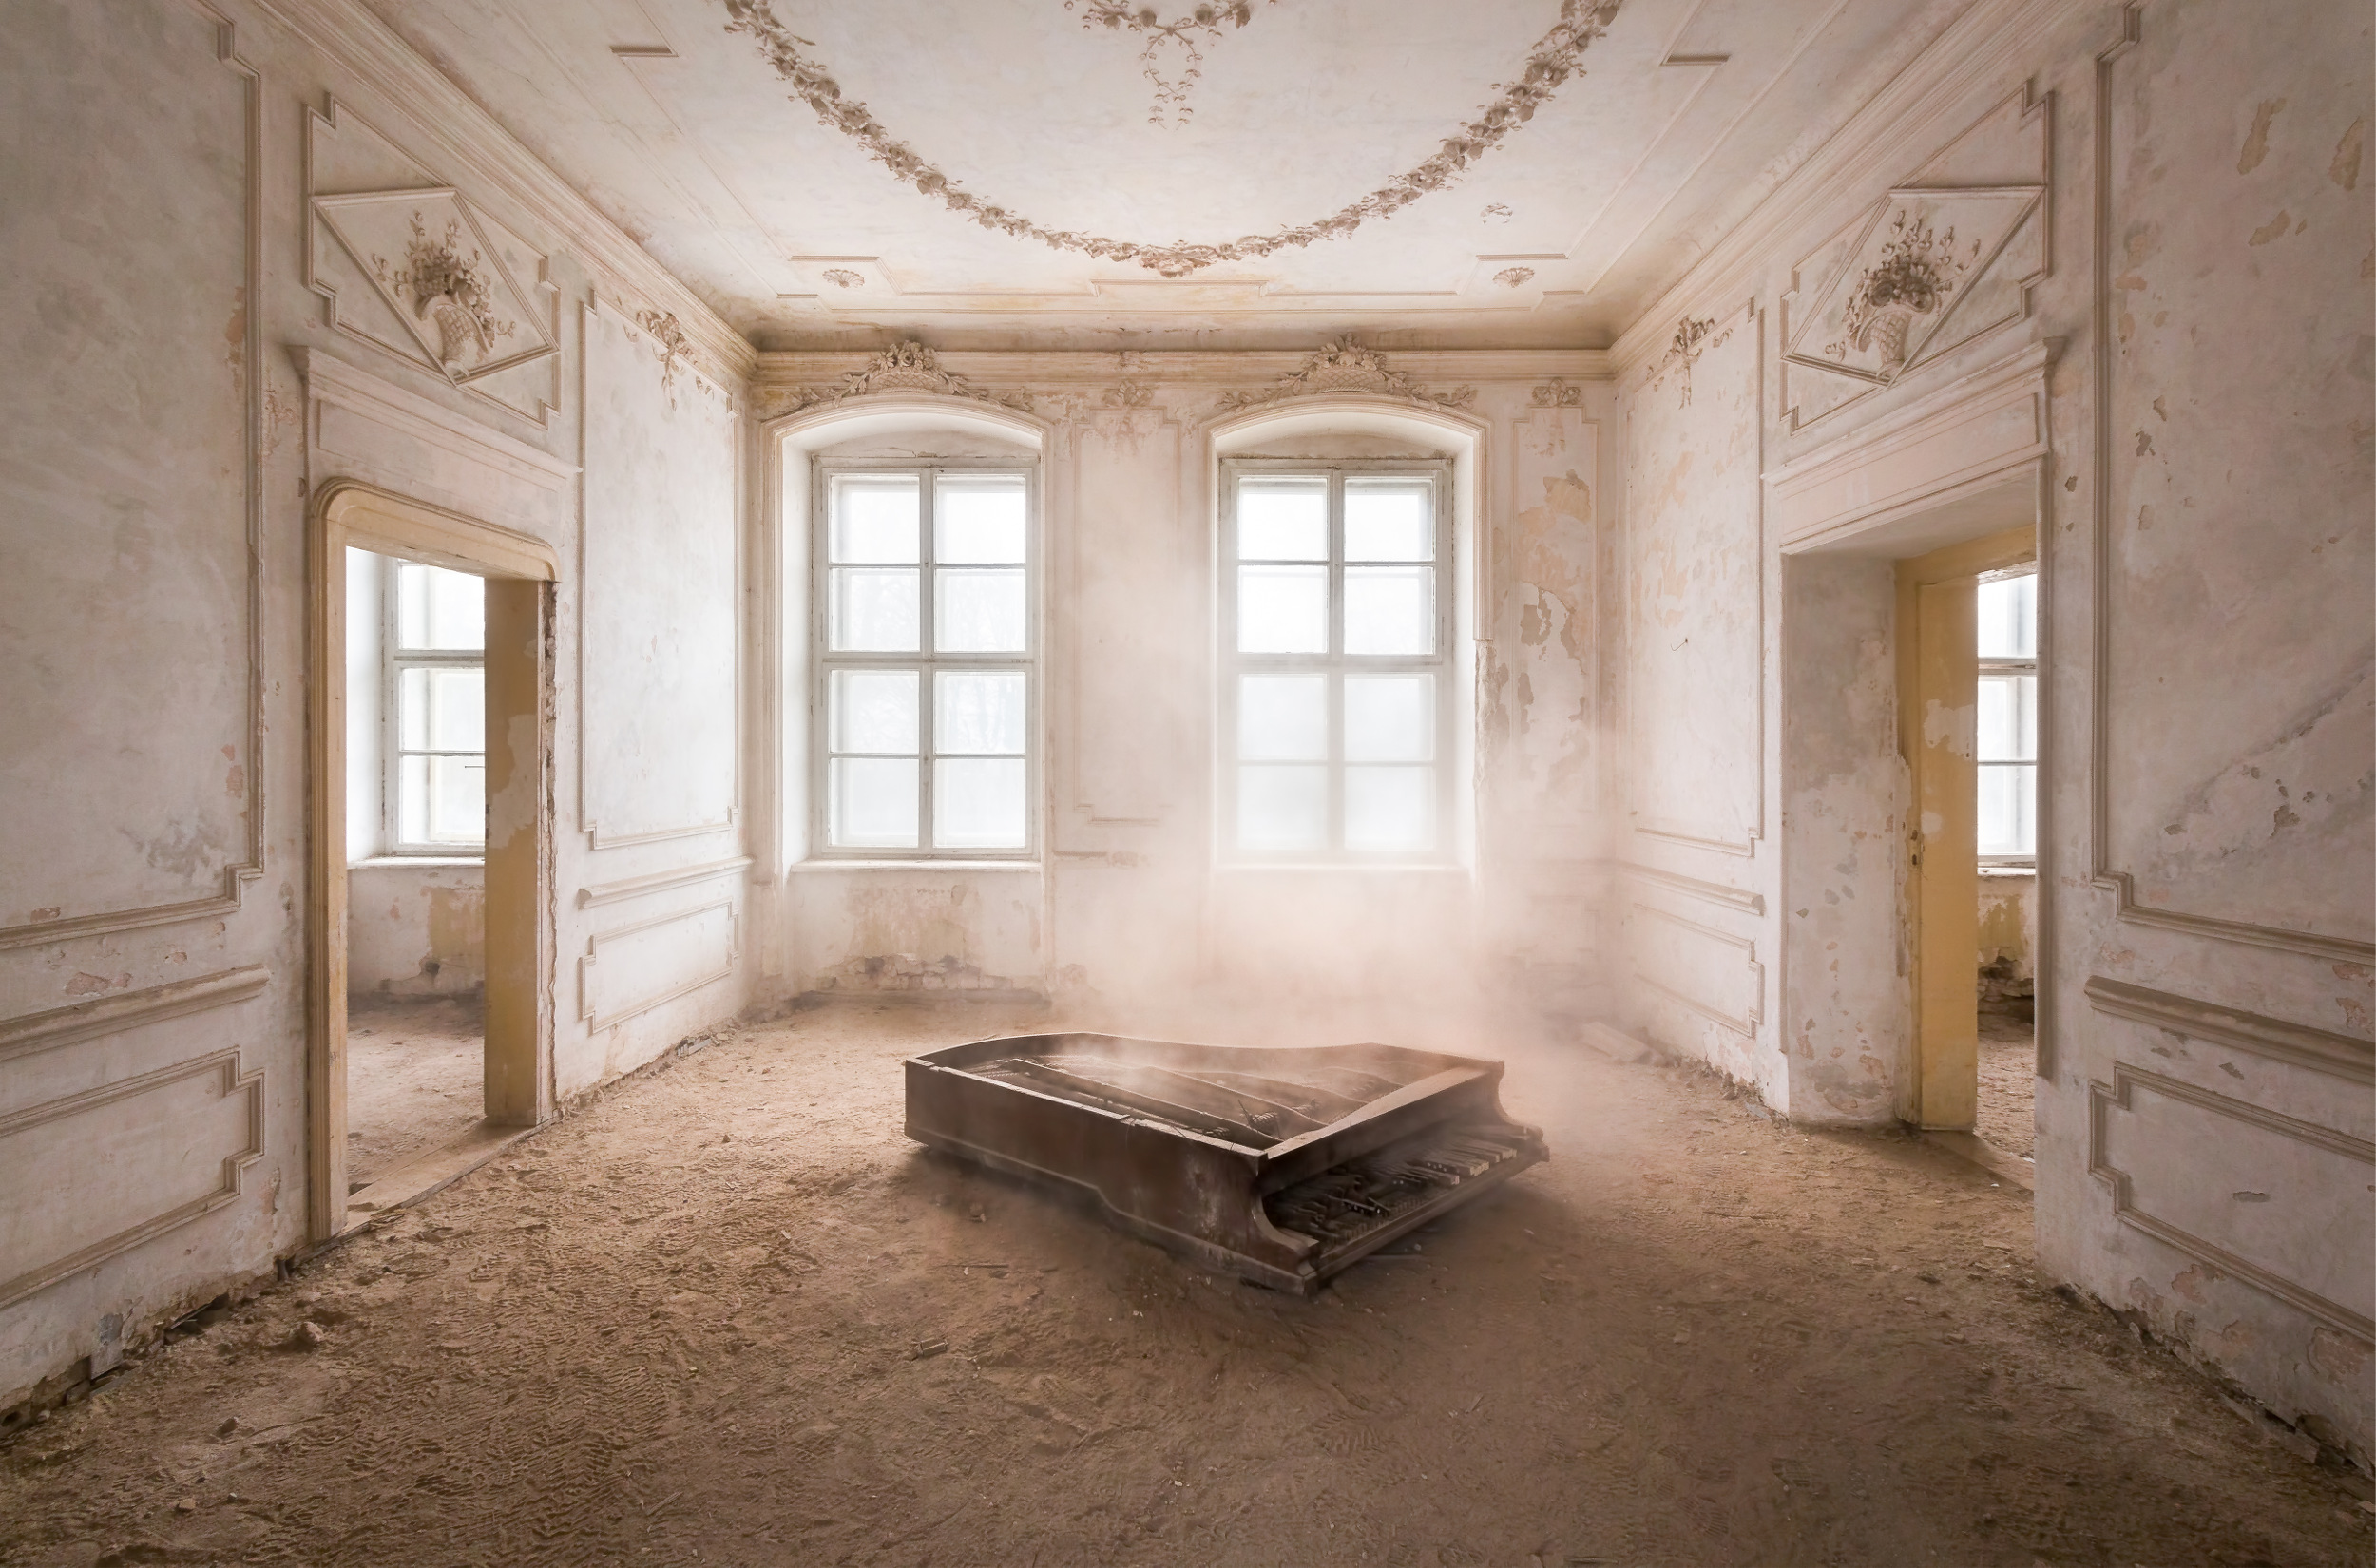 A piano in a dust covered palace somewhere in Poland.